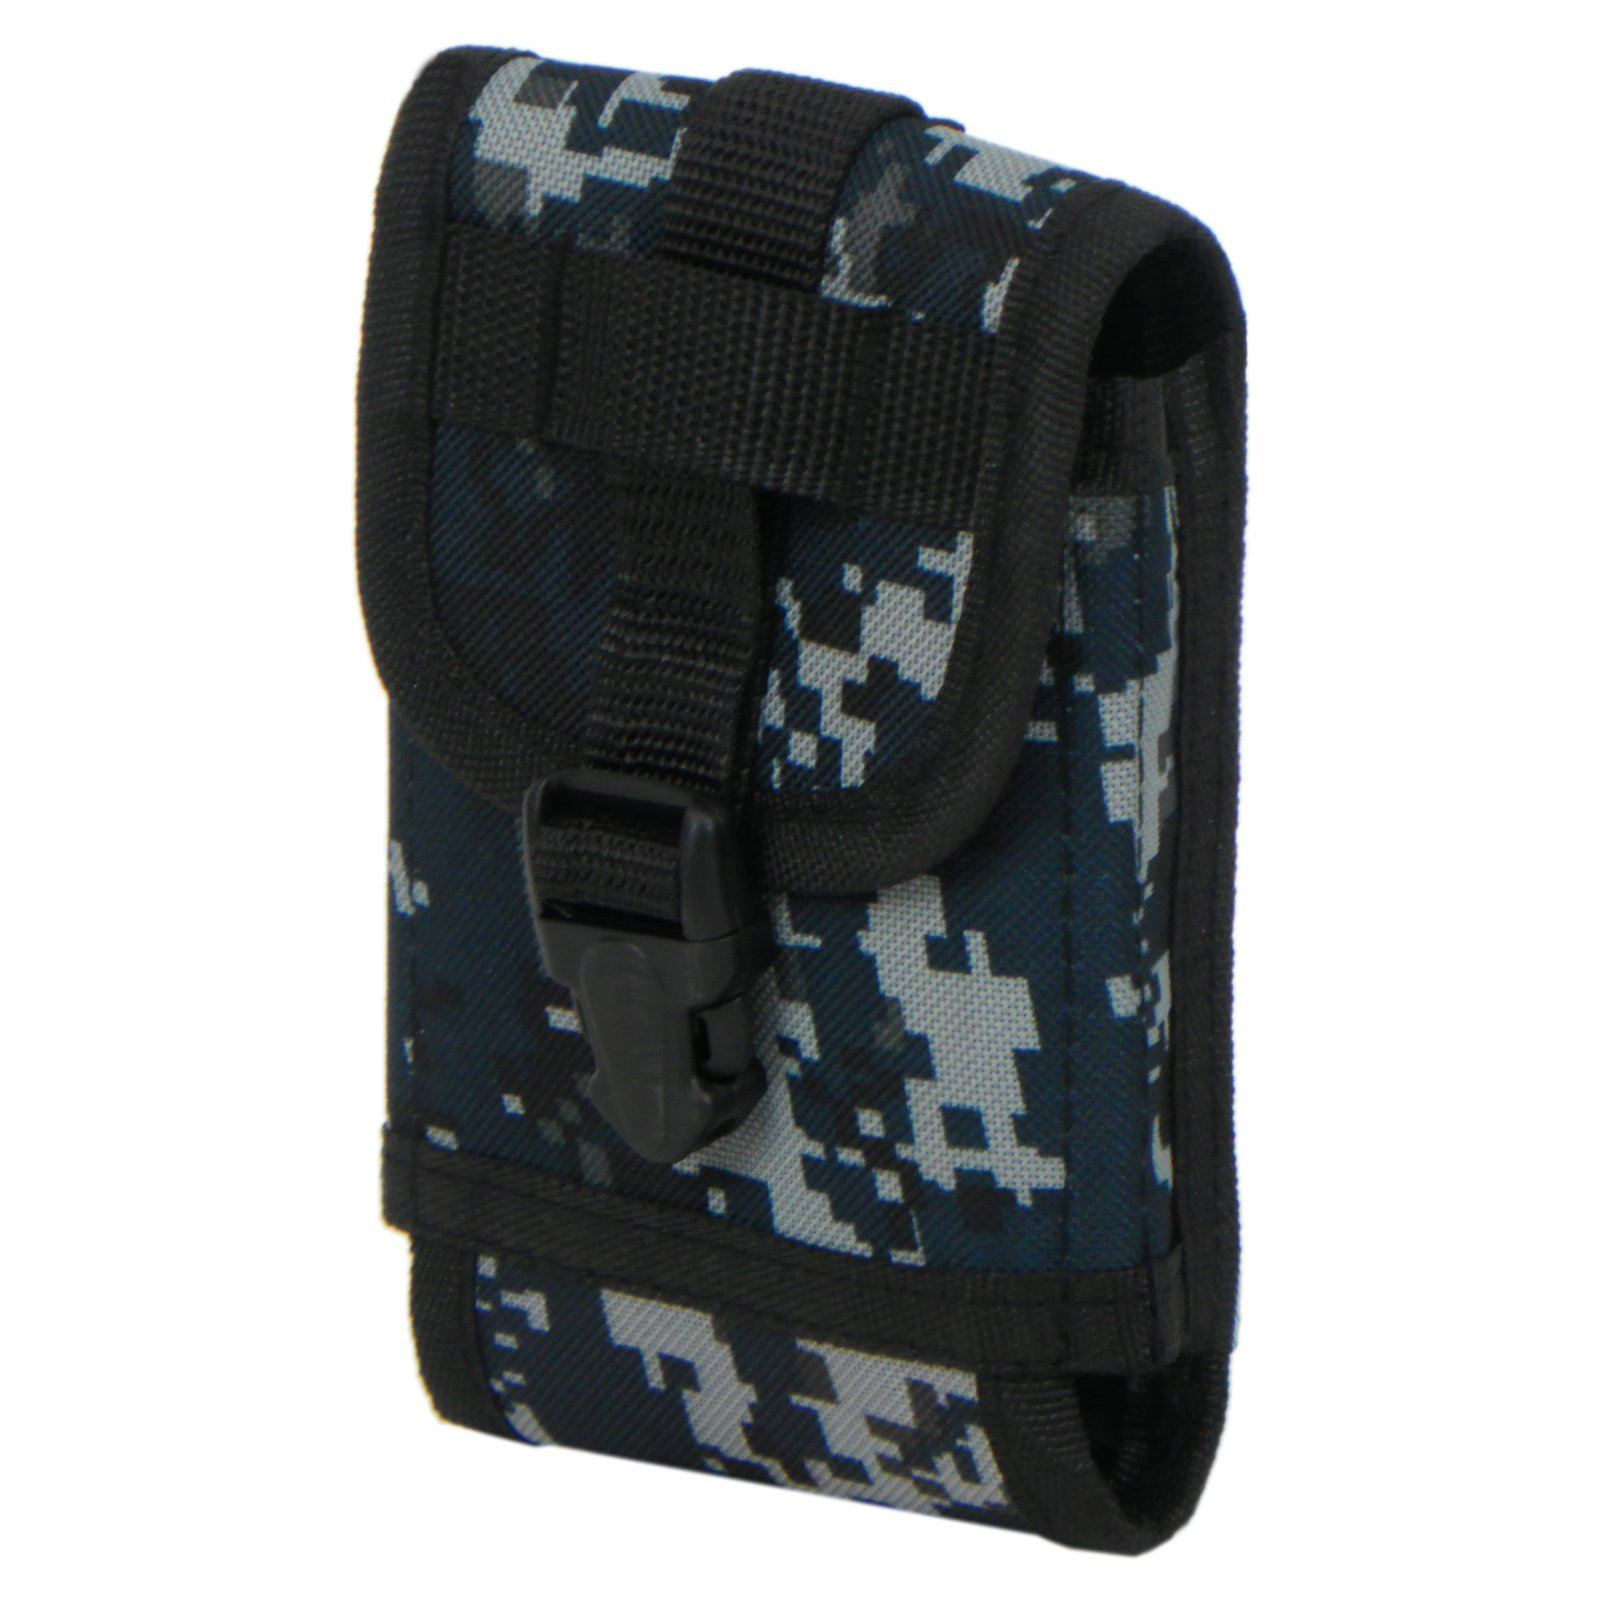 East West U.S.A. Tactical Molle ACU Attachment Cellphone Holster